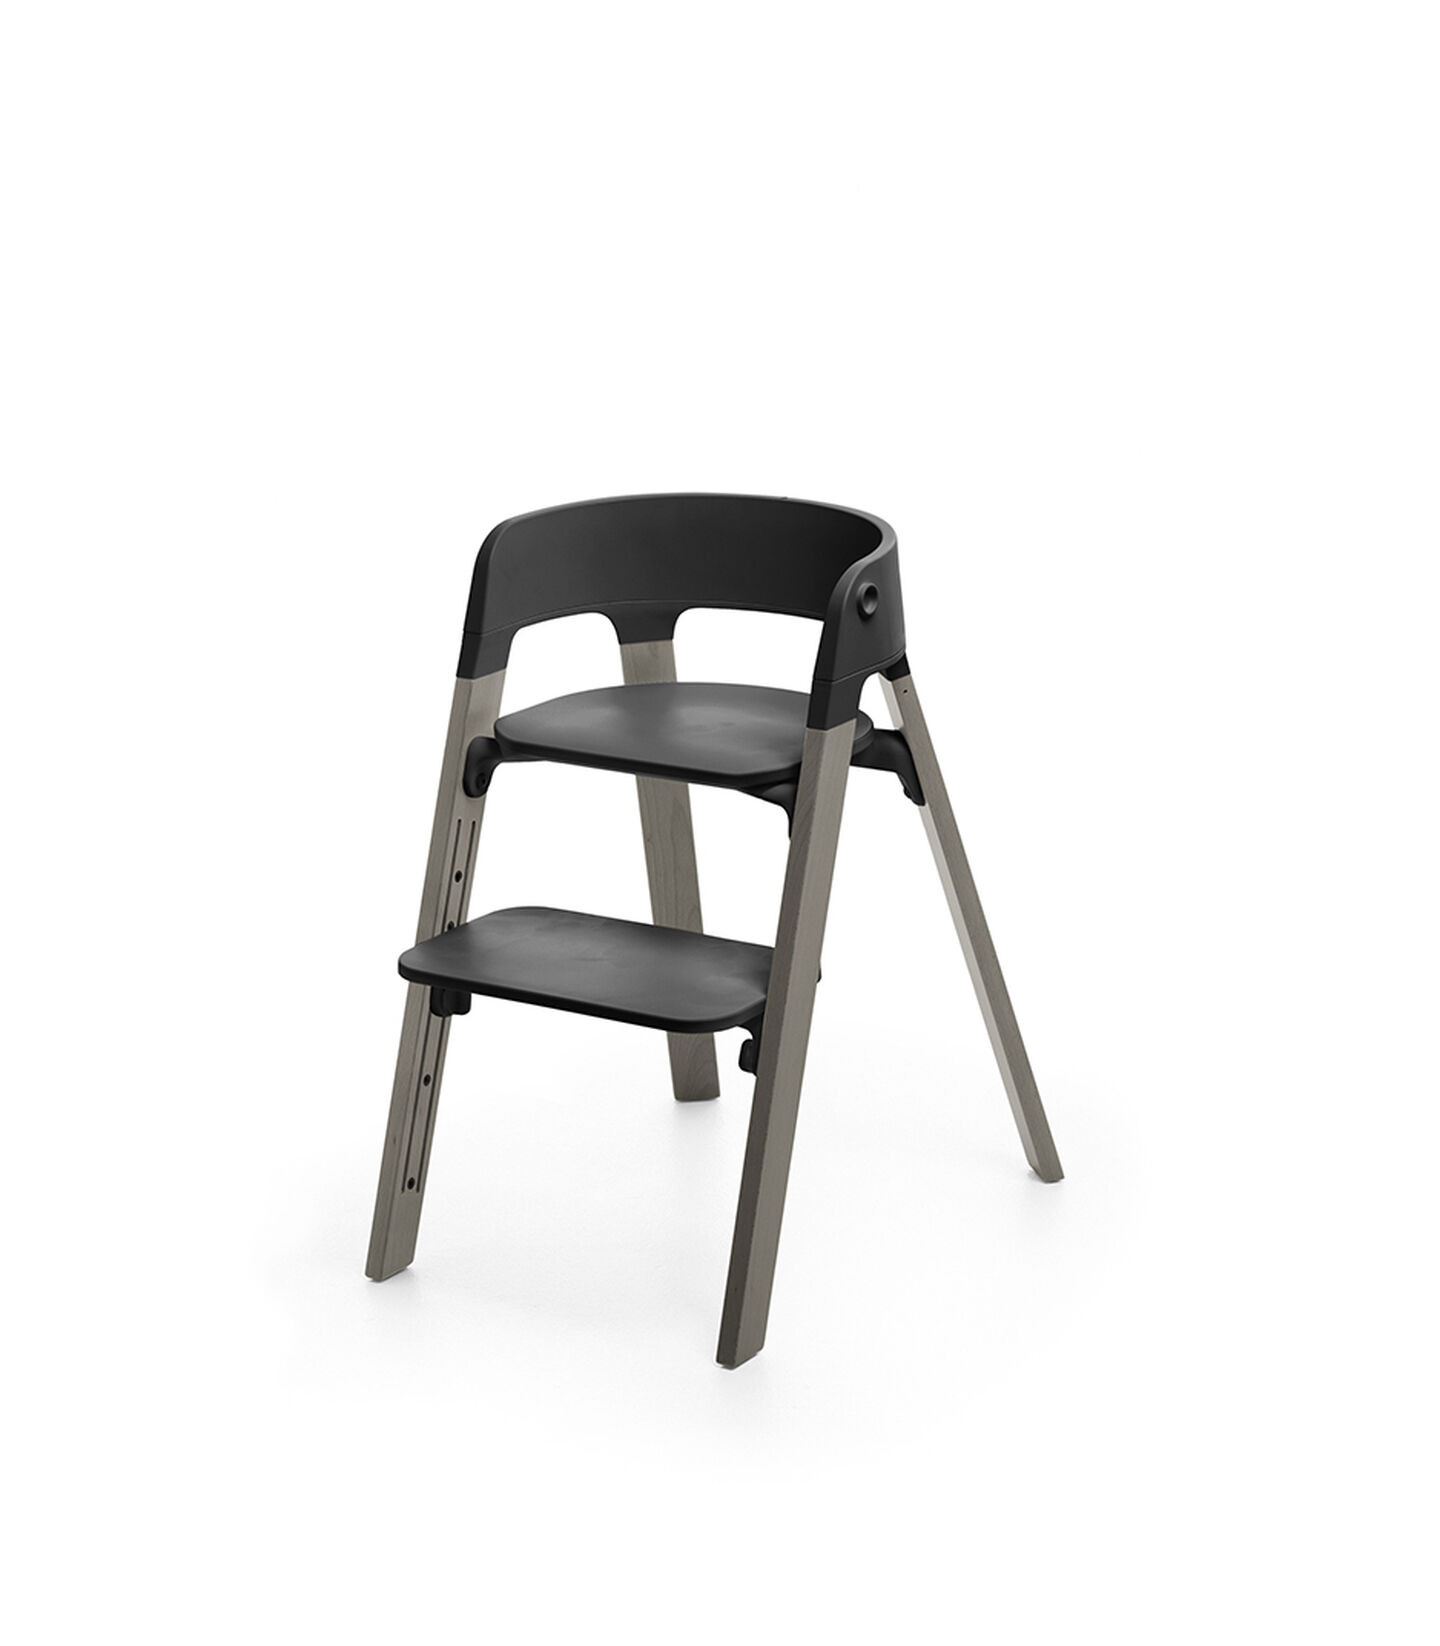 Stokke® Steps™ Chair Black Seat Midnight Blue, Midnight Blue, mainview view 2